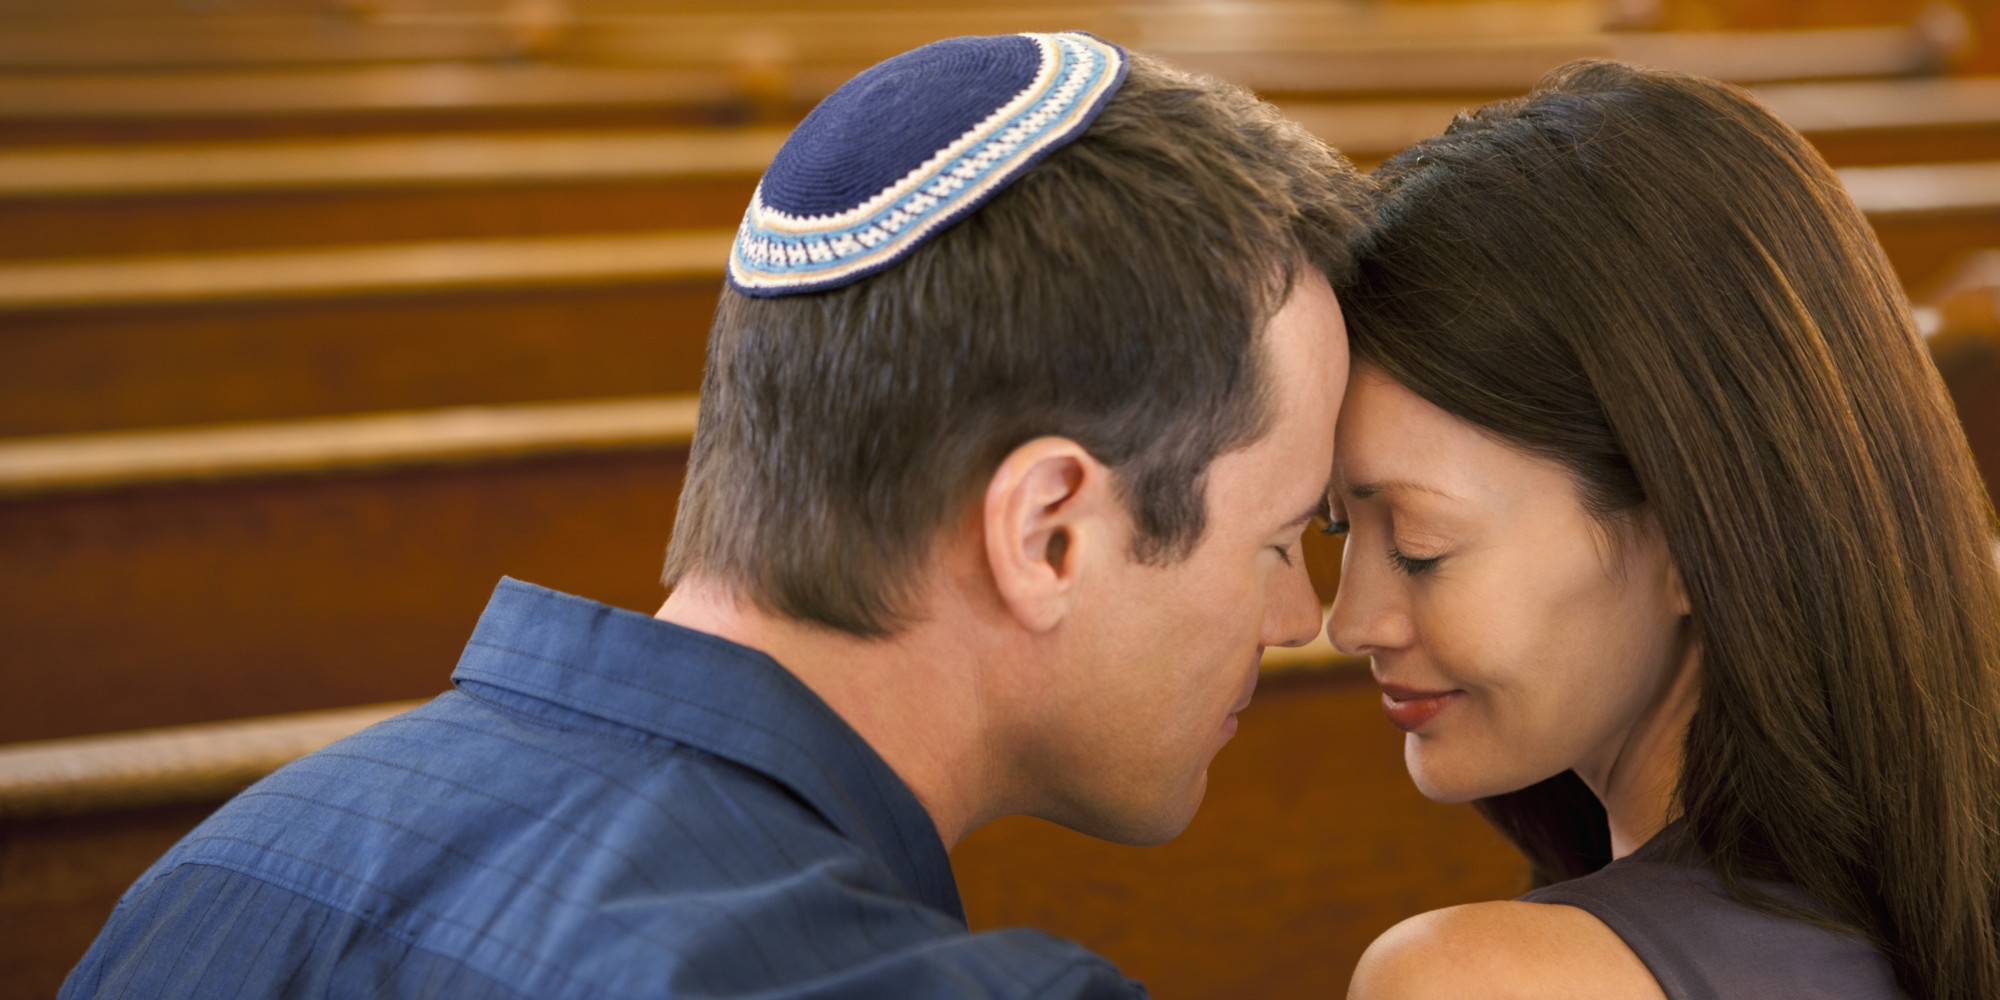 jewish single men in fishs eddy Singles jewish - join one of best online dating sites for single people you will meet single, smart, beautiful men and women in your city the peachtree city dating scene is more active than ever with thousands of new members registering for ubangwithfriends every 31 years old single woman seeking men.